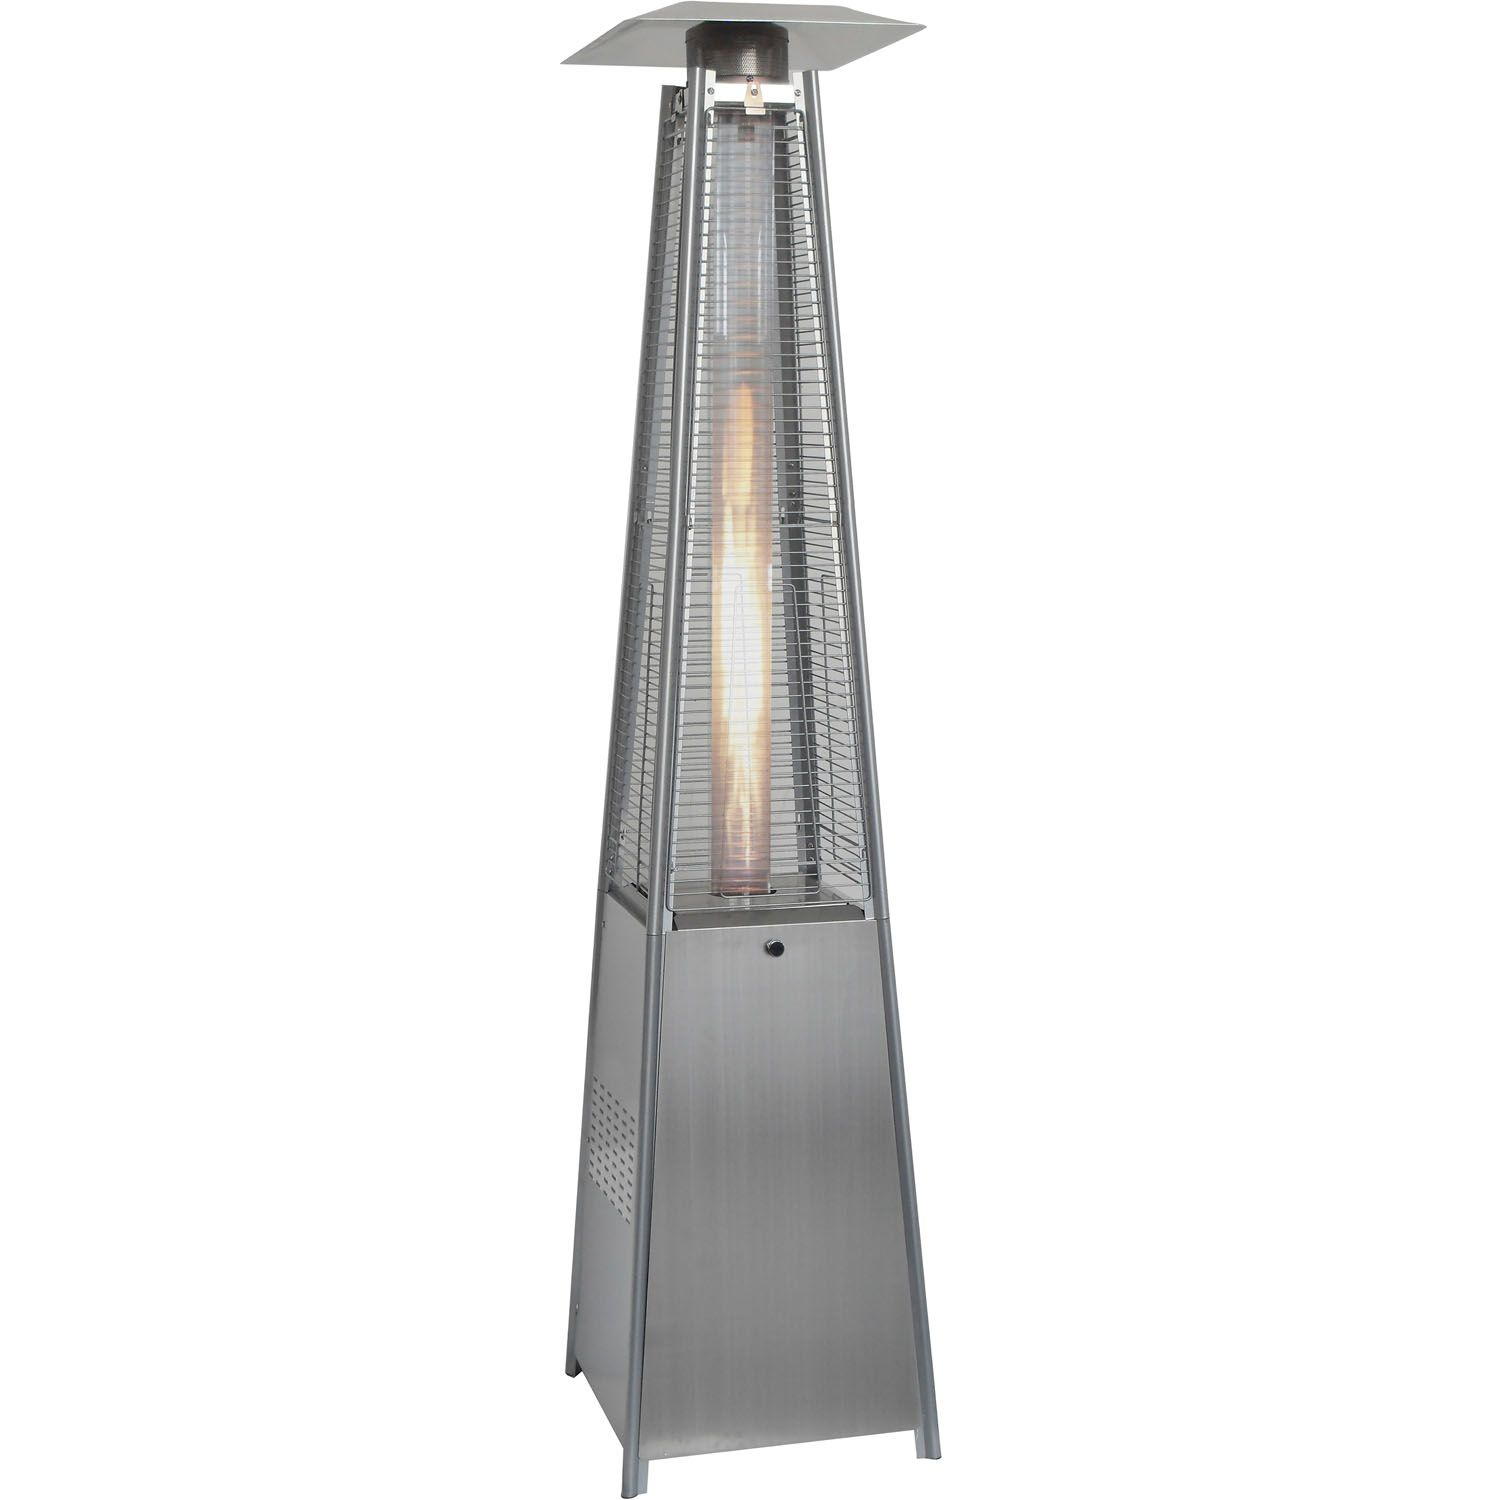 7 Ft Pyramid Propane Patio Heater In Stainless Steel Han102ss Gas Patio Heater Propane Patio Heater Natural Gas Patio Heater